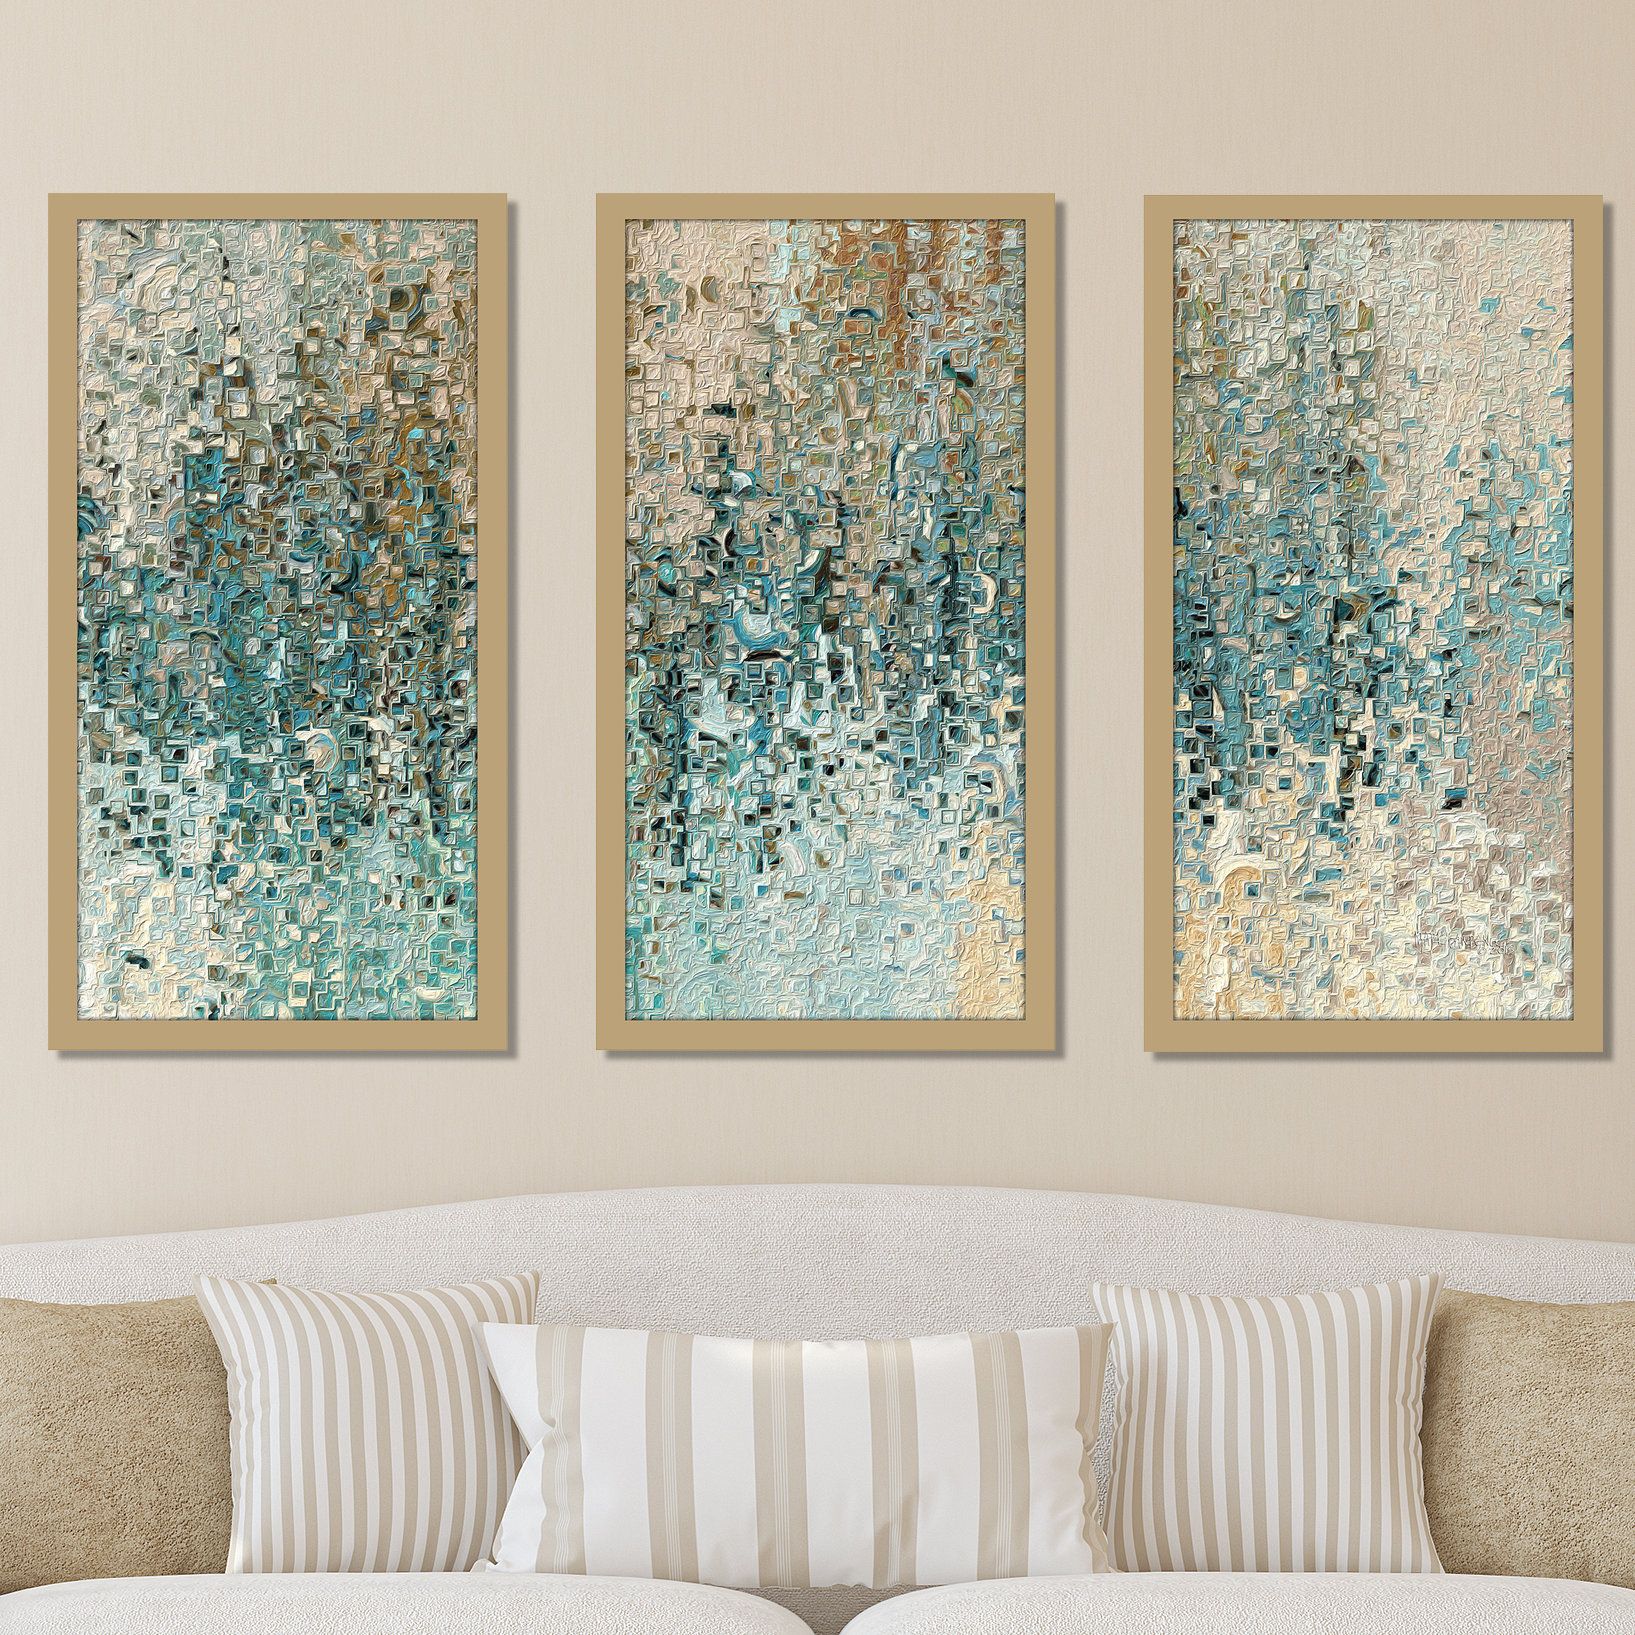 3 Piece Wall Art You'll Love In 2019 | Wayfair within 3 Piece Wall Decor Sets by Wrought Studio (Image 17 of 30)